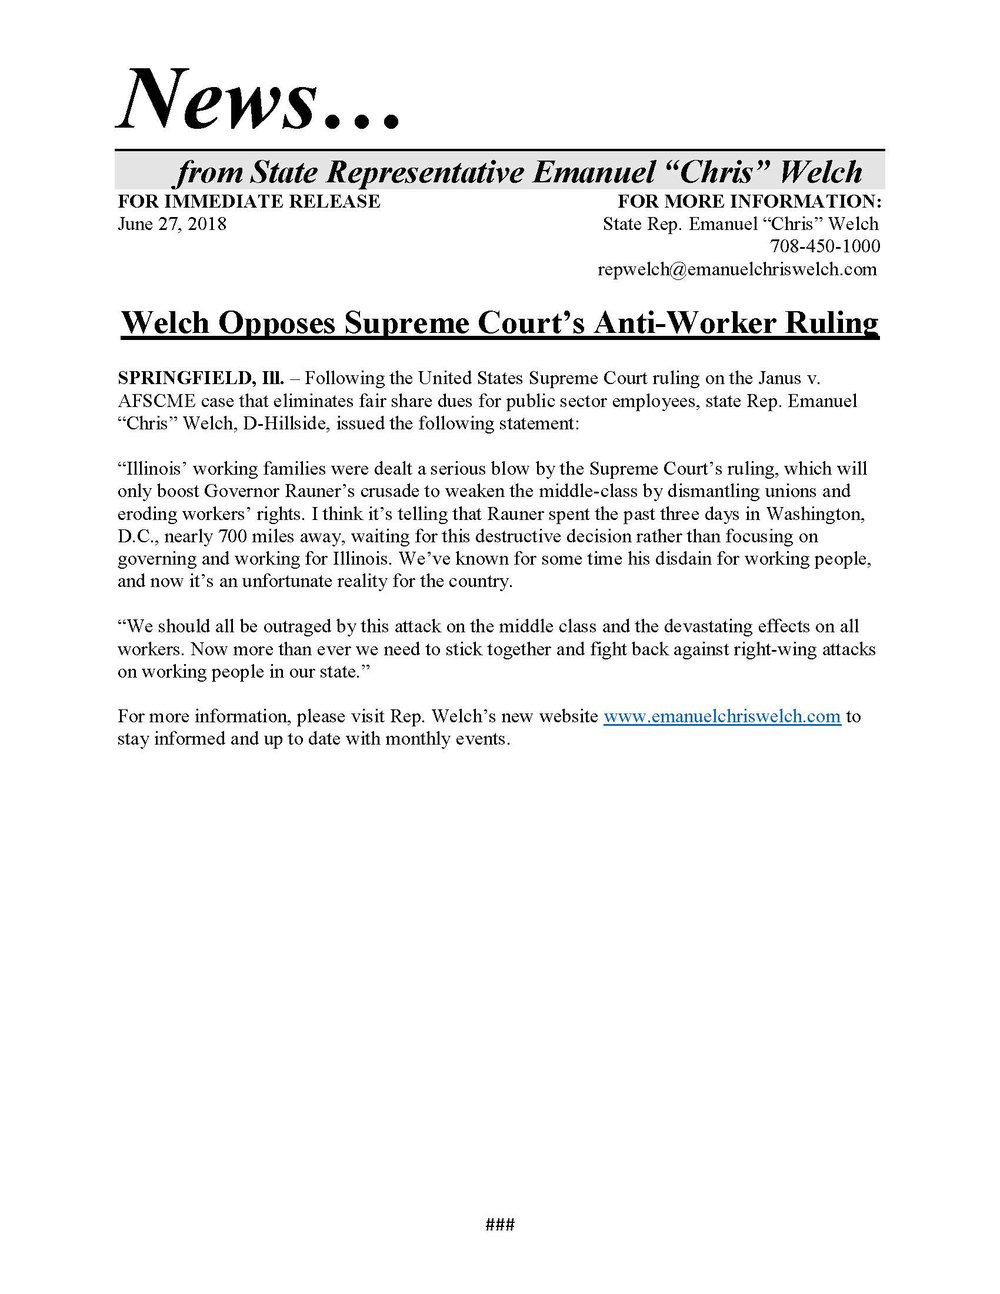 Welch Opposes Supreme Court's Anti-Worker Ruling  (June 27, 2018)